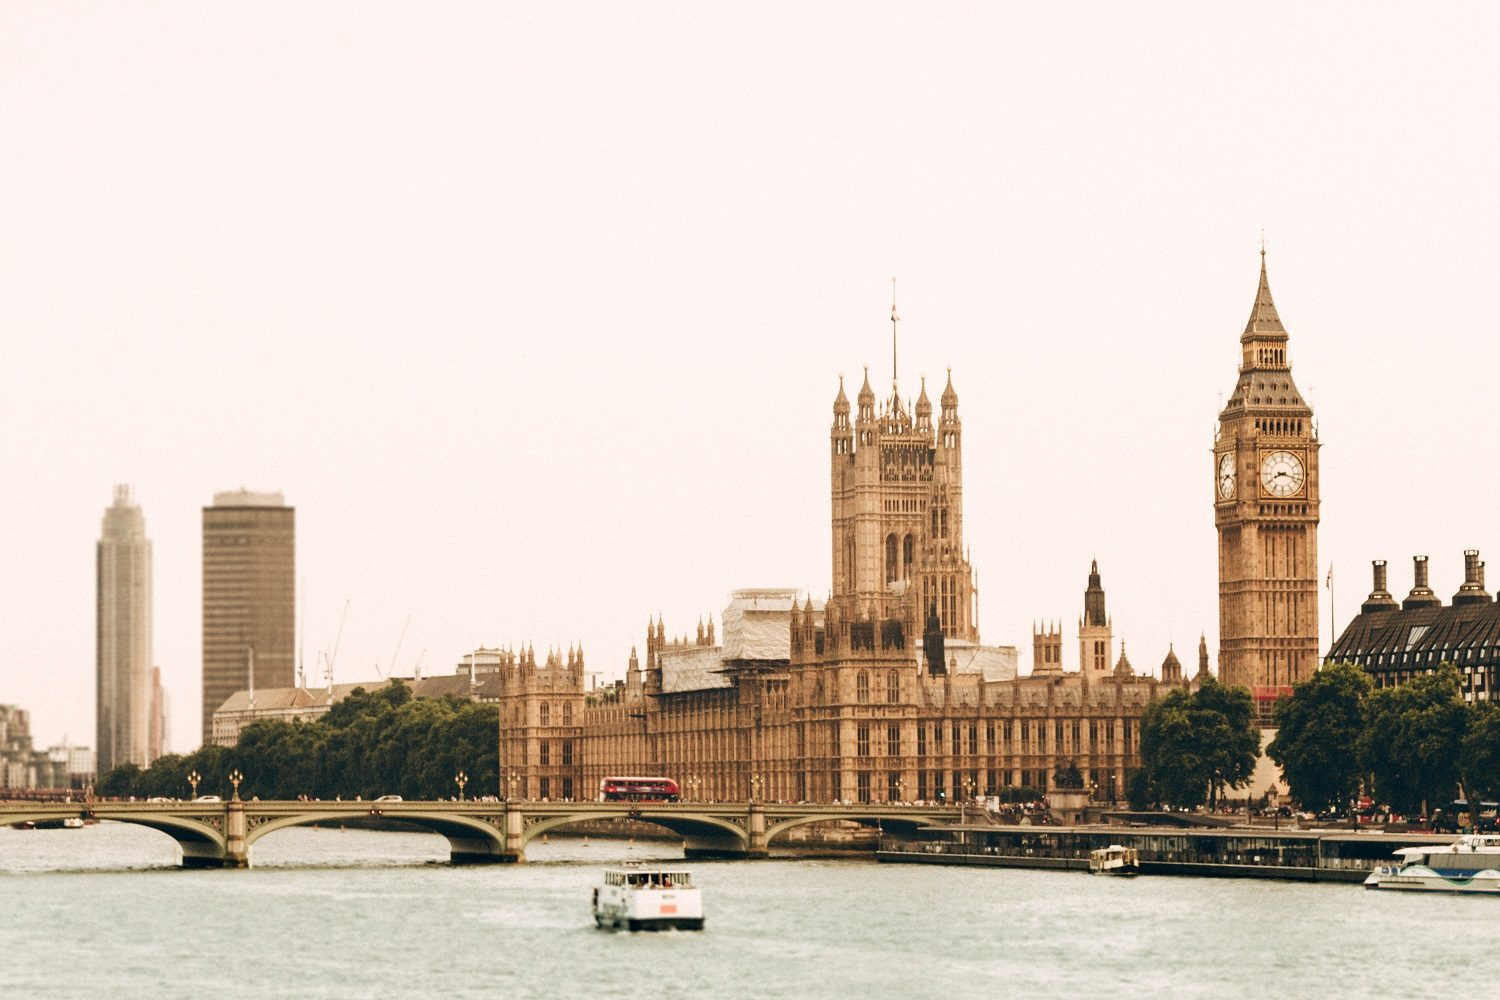 foto 4 London thames by day in perspectief